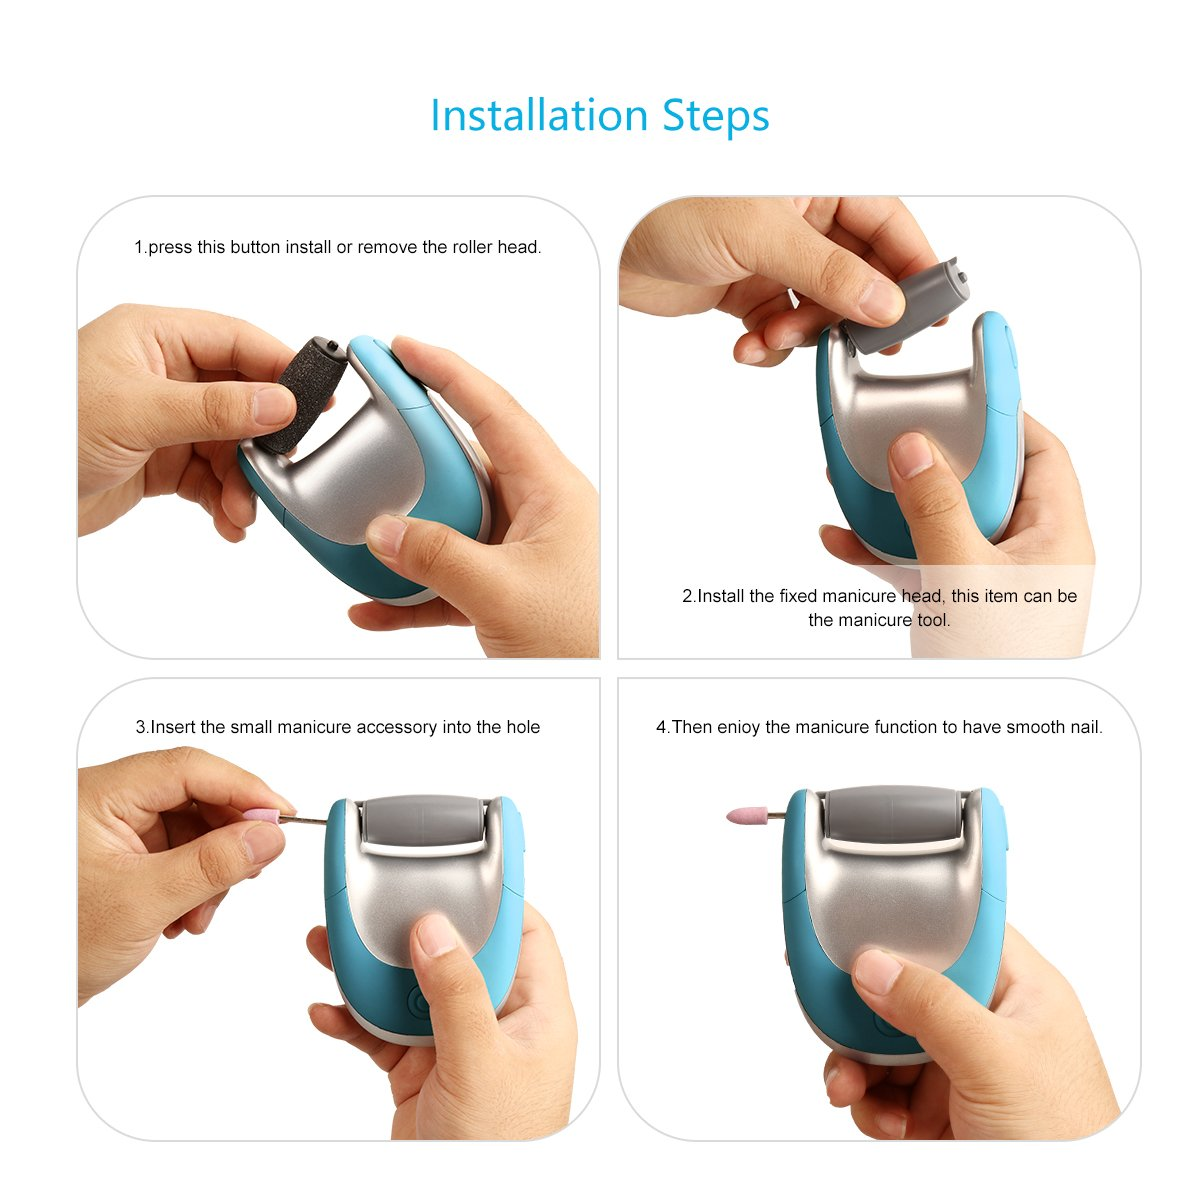 Nail polisher and callus remover nail care kit be sure to check out -  1 Electric Callus Remover Foot File Nail Polisher By Ms W Pedicure Tools Manicure Kit With Portable Travel Bag Usb Rechargeable Health Personal Care